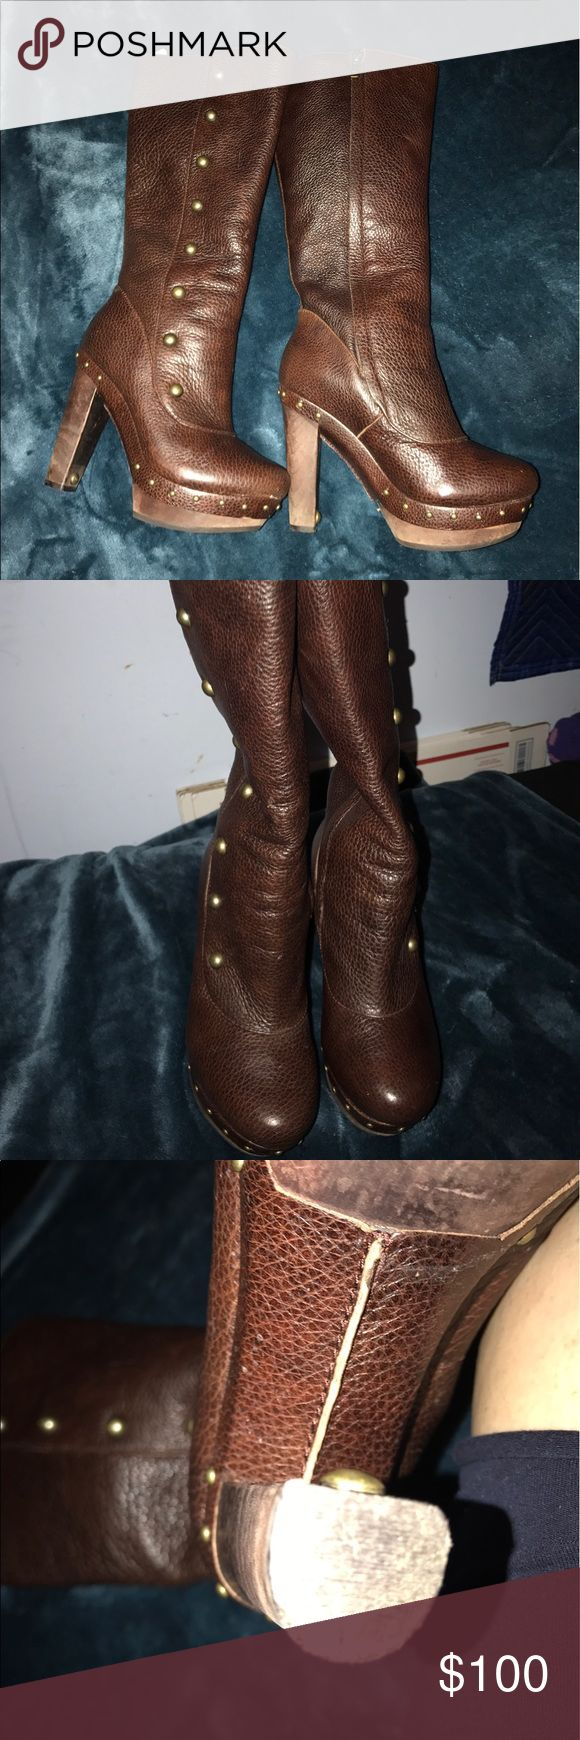 Tall ugg women leather boots size 5.5 Women leather ugg Boots Size 5.5 zipper on the inside part smoke free home UGG Shoes Heeled Boots